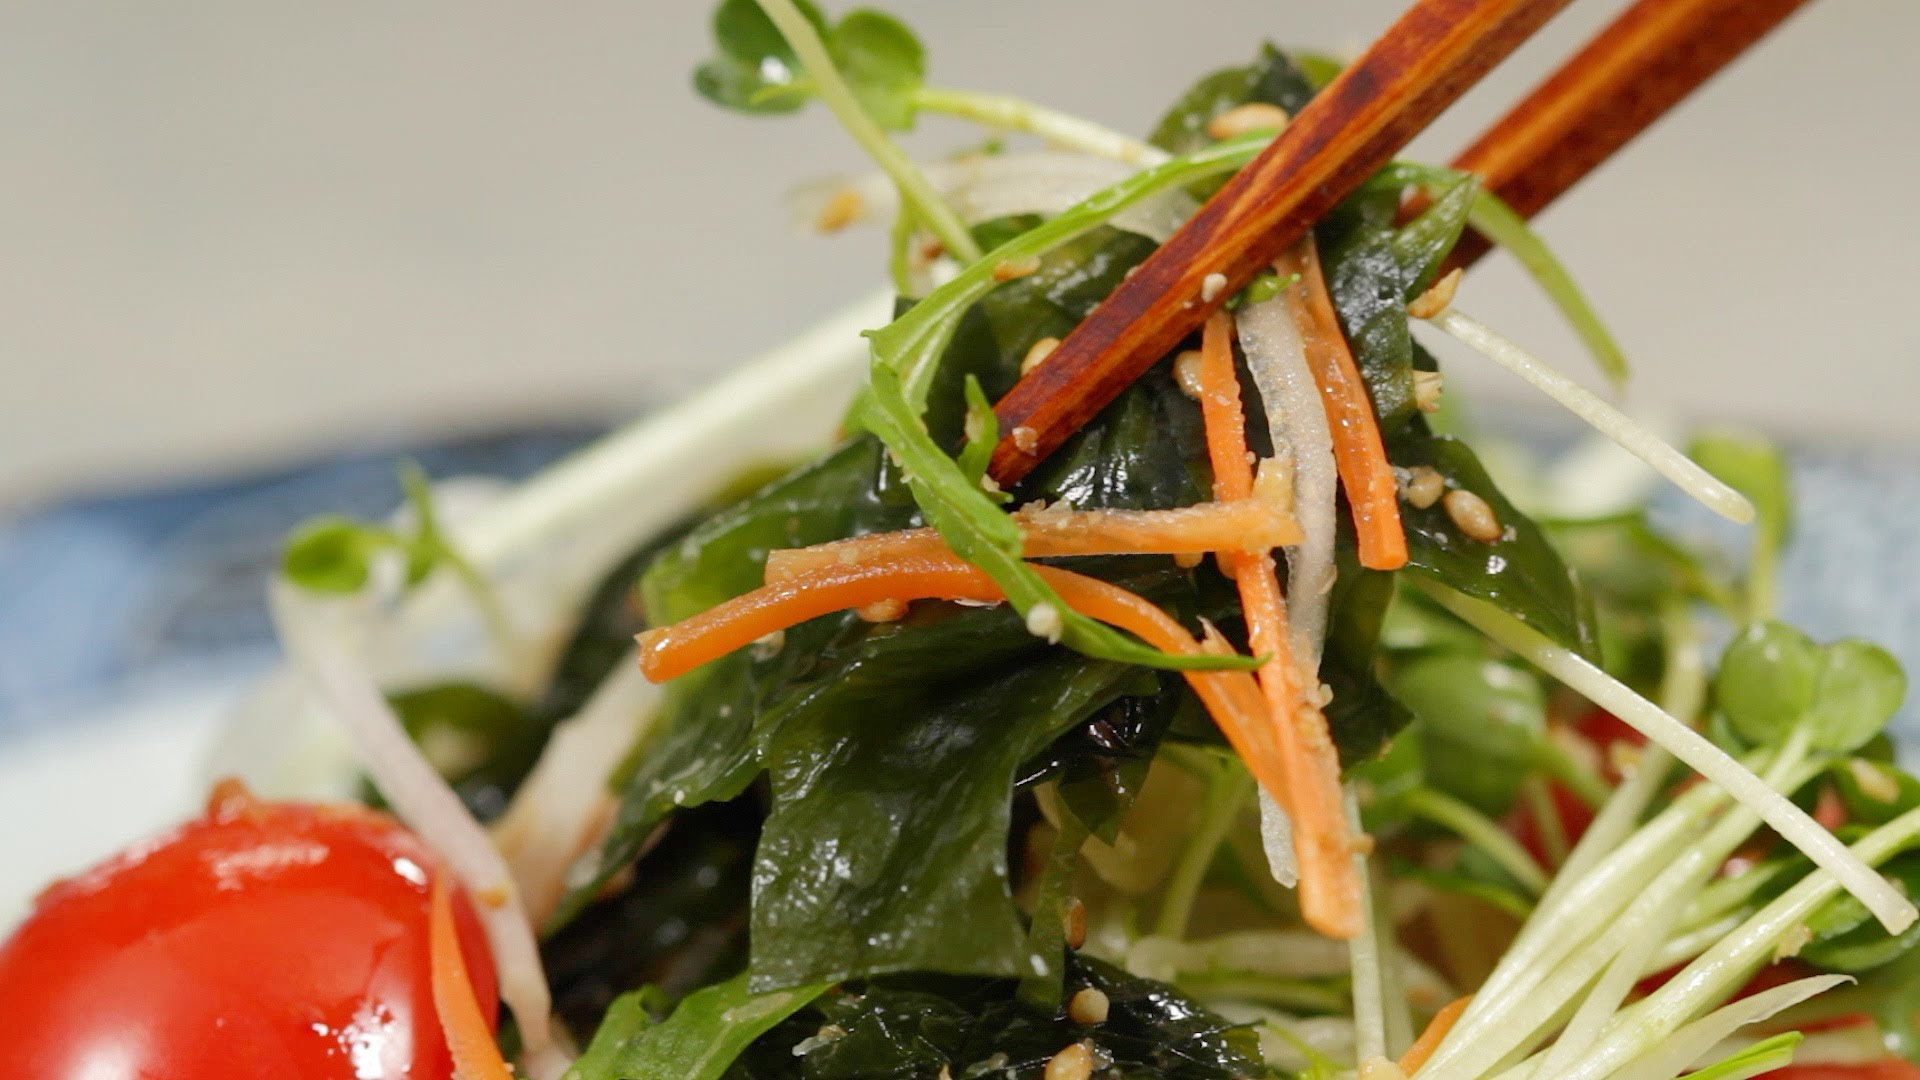 How To Eat Seaweed, For Those Of You Who Have No Idea   HuffPost Life